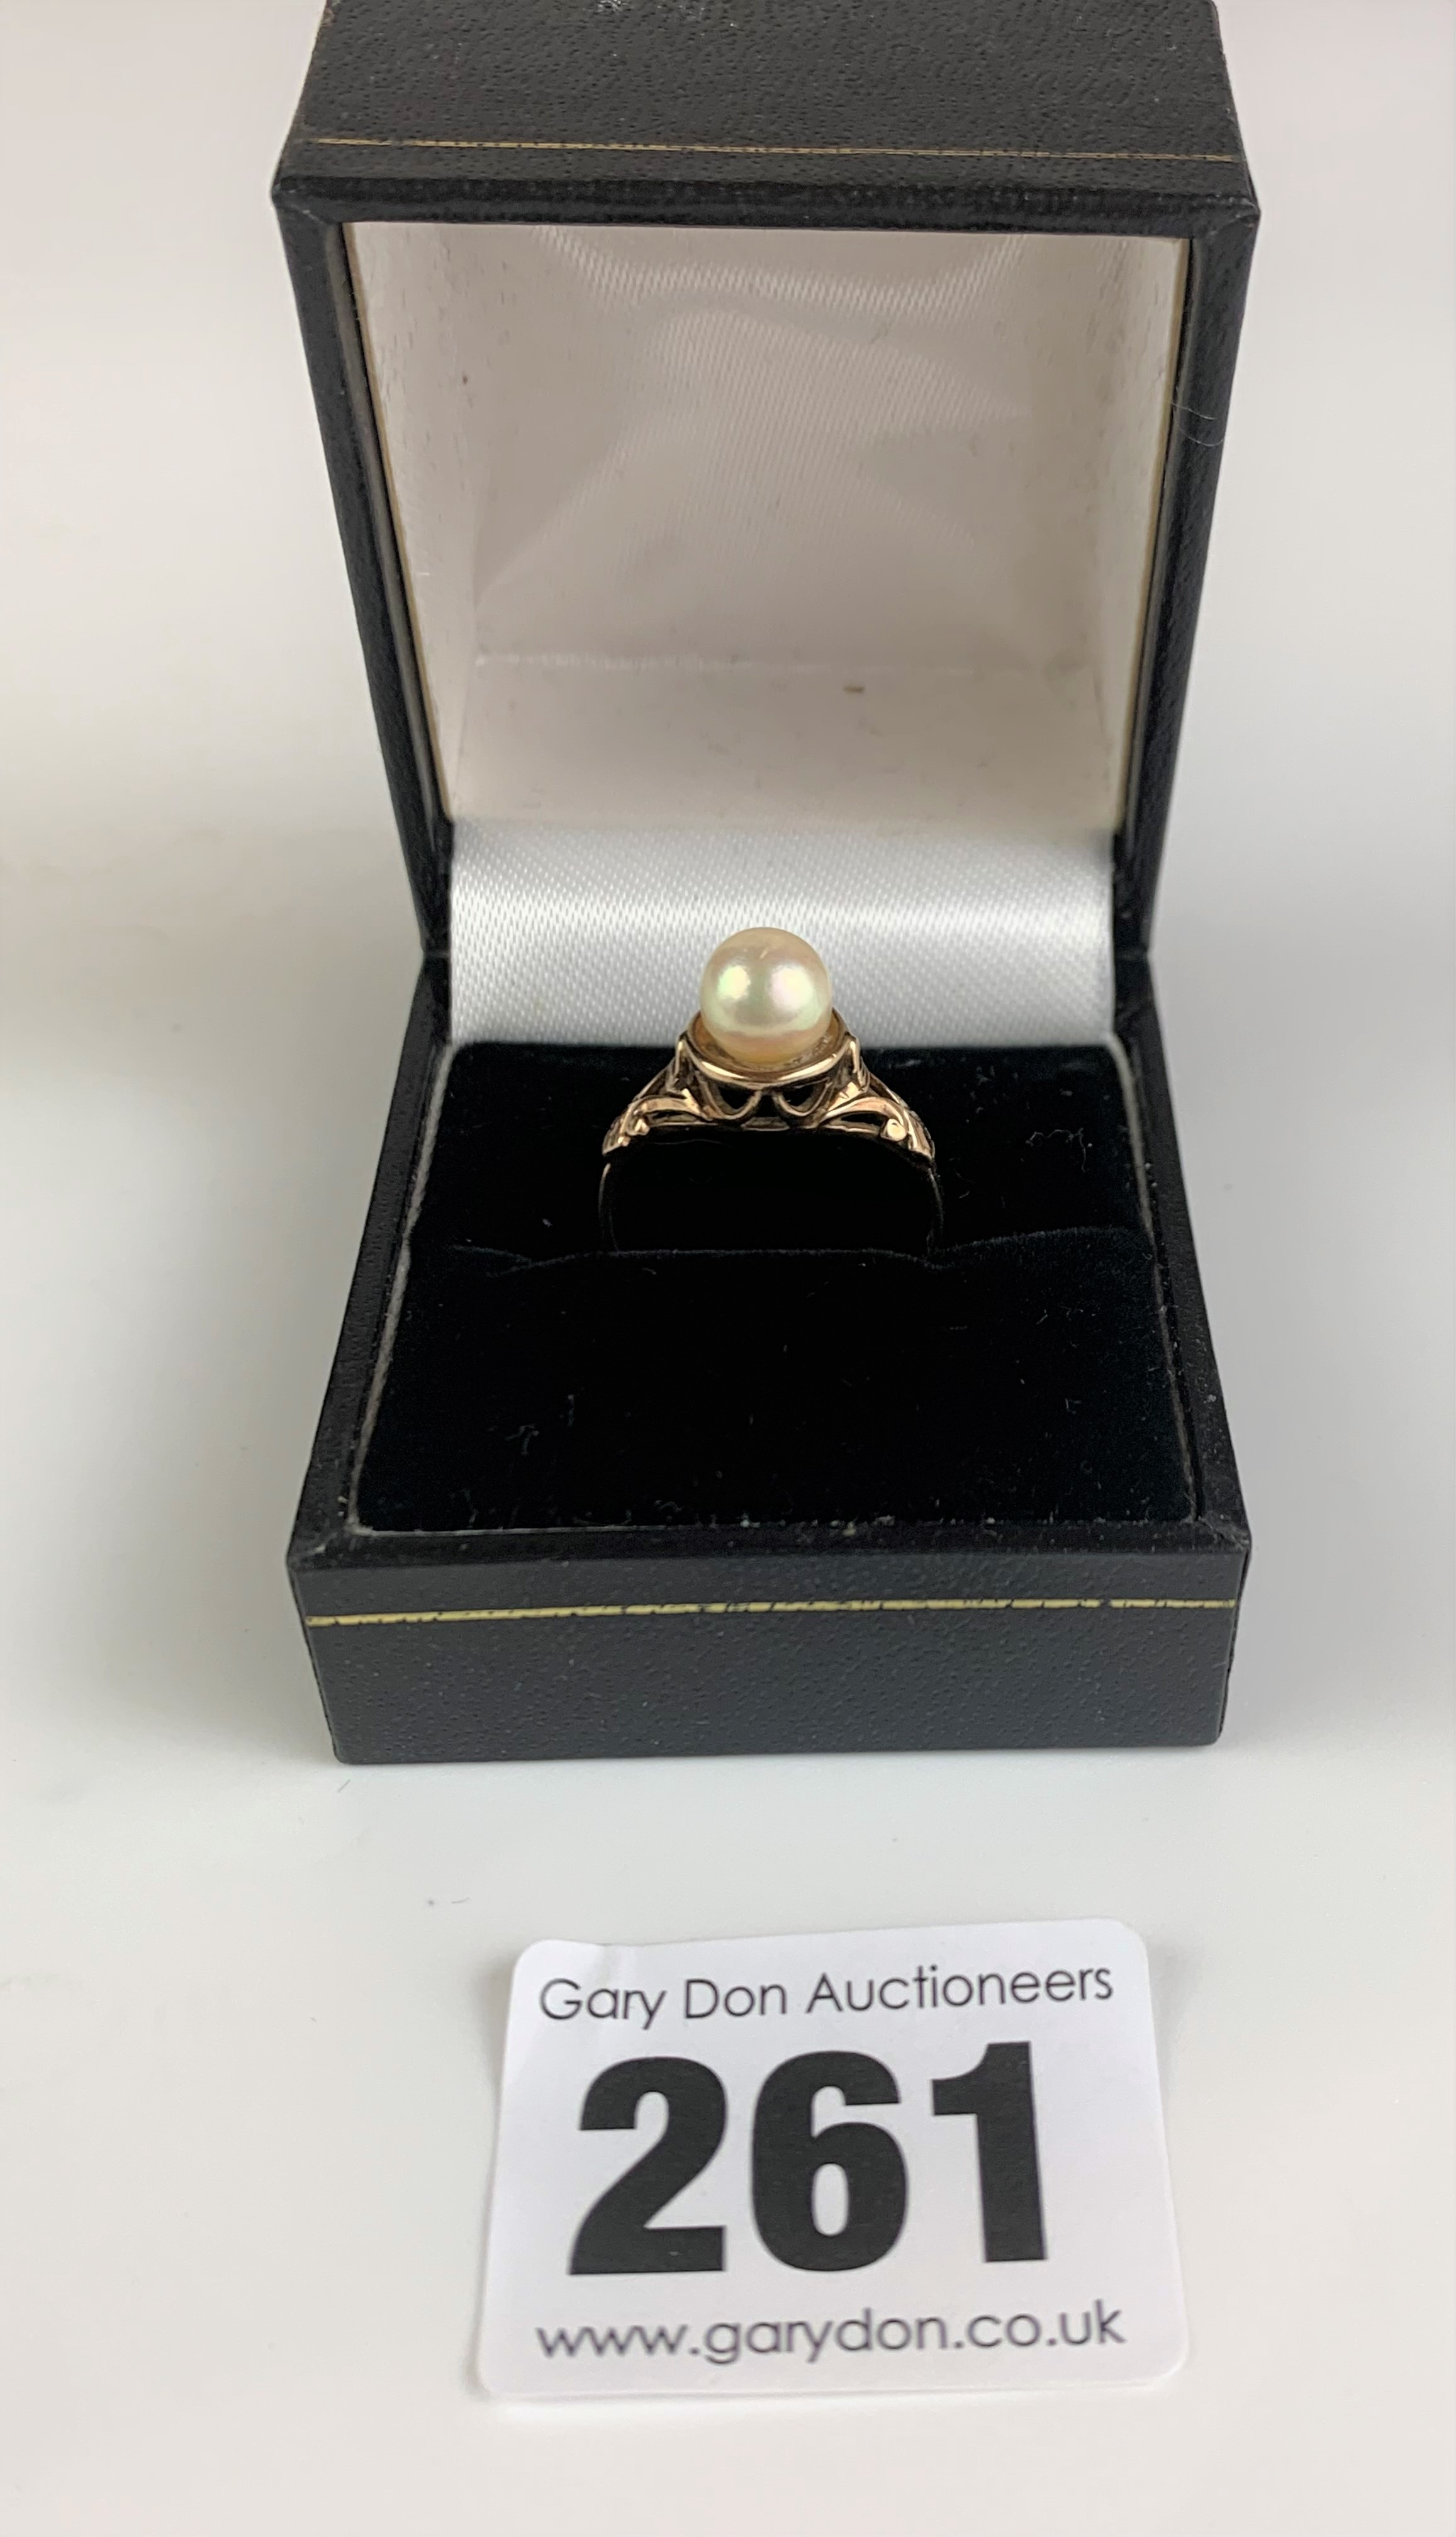 9k gold and pearl ring, size M, w: 2.4 gms